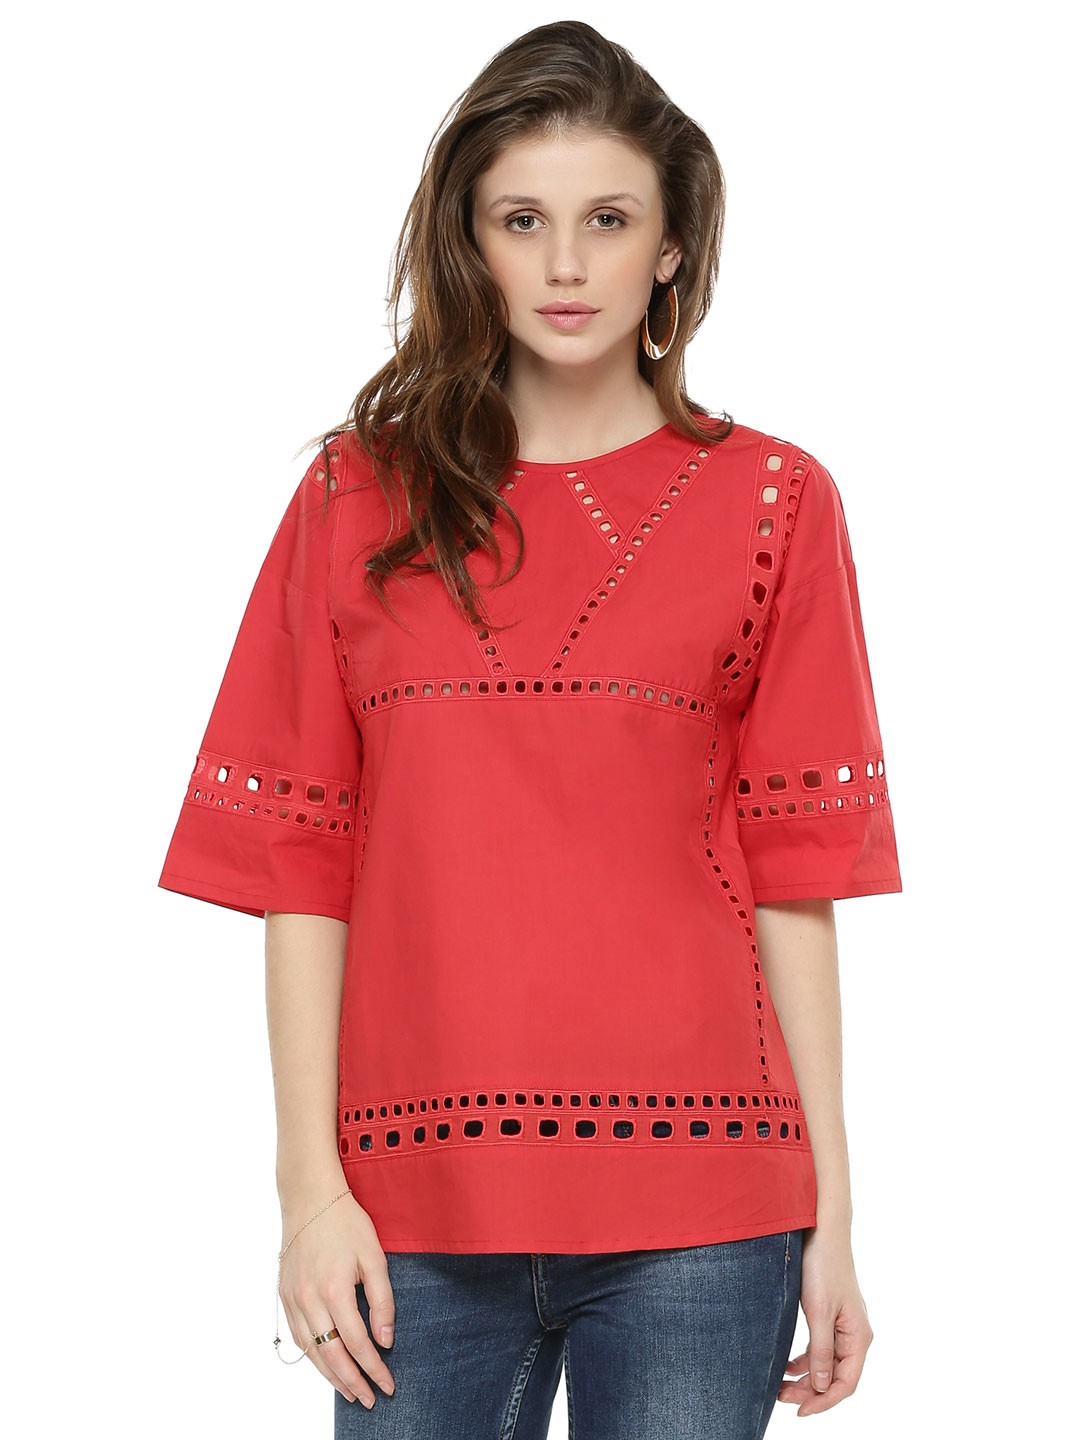 Rena Love Red Ladder Lace Insert Top 1